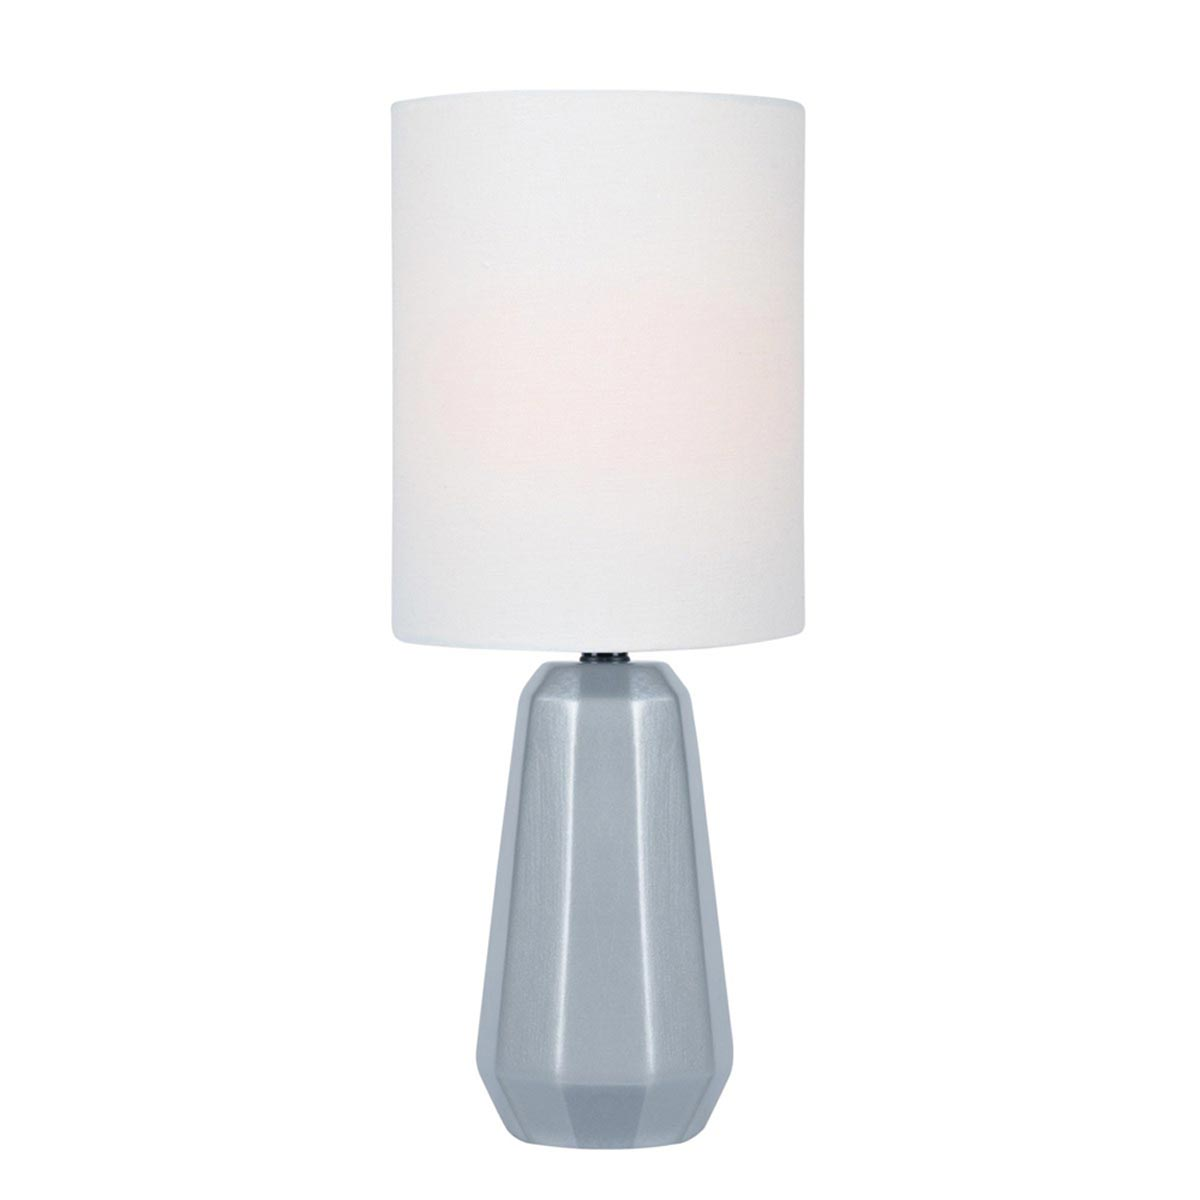 Charna Table Lamp, Silver